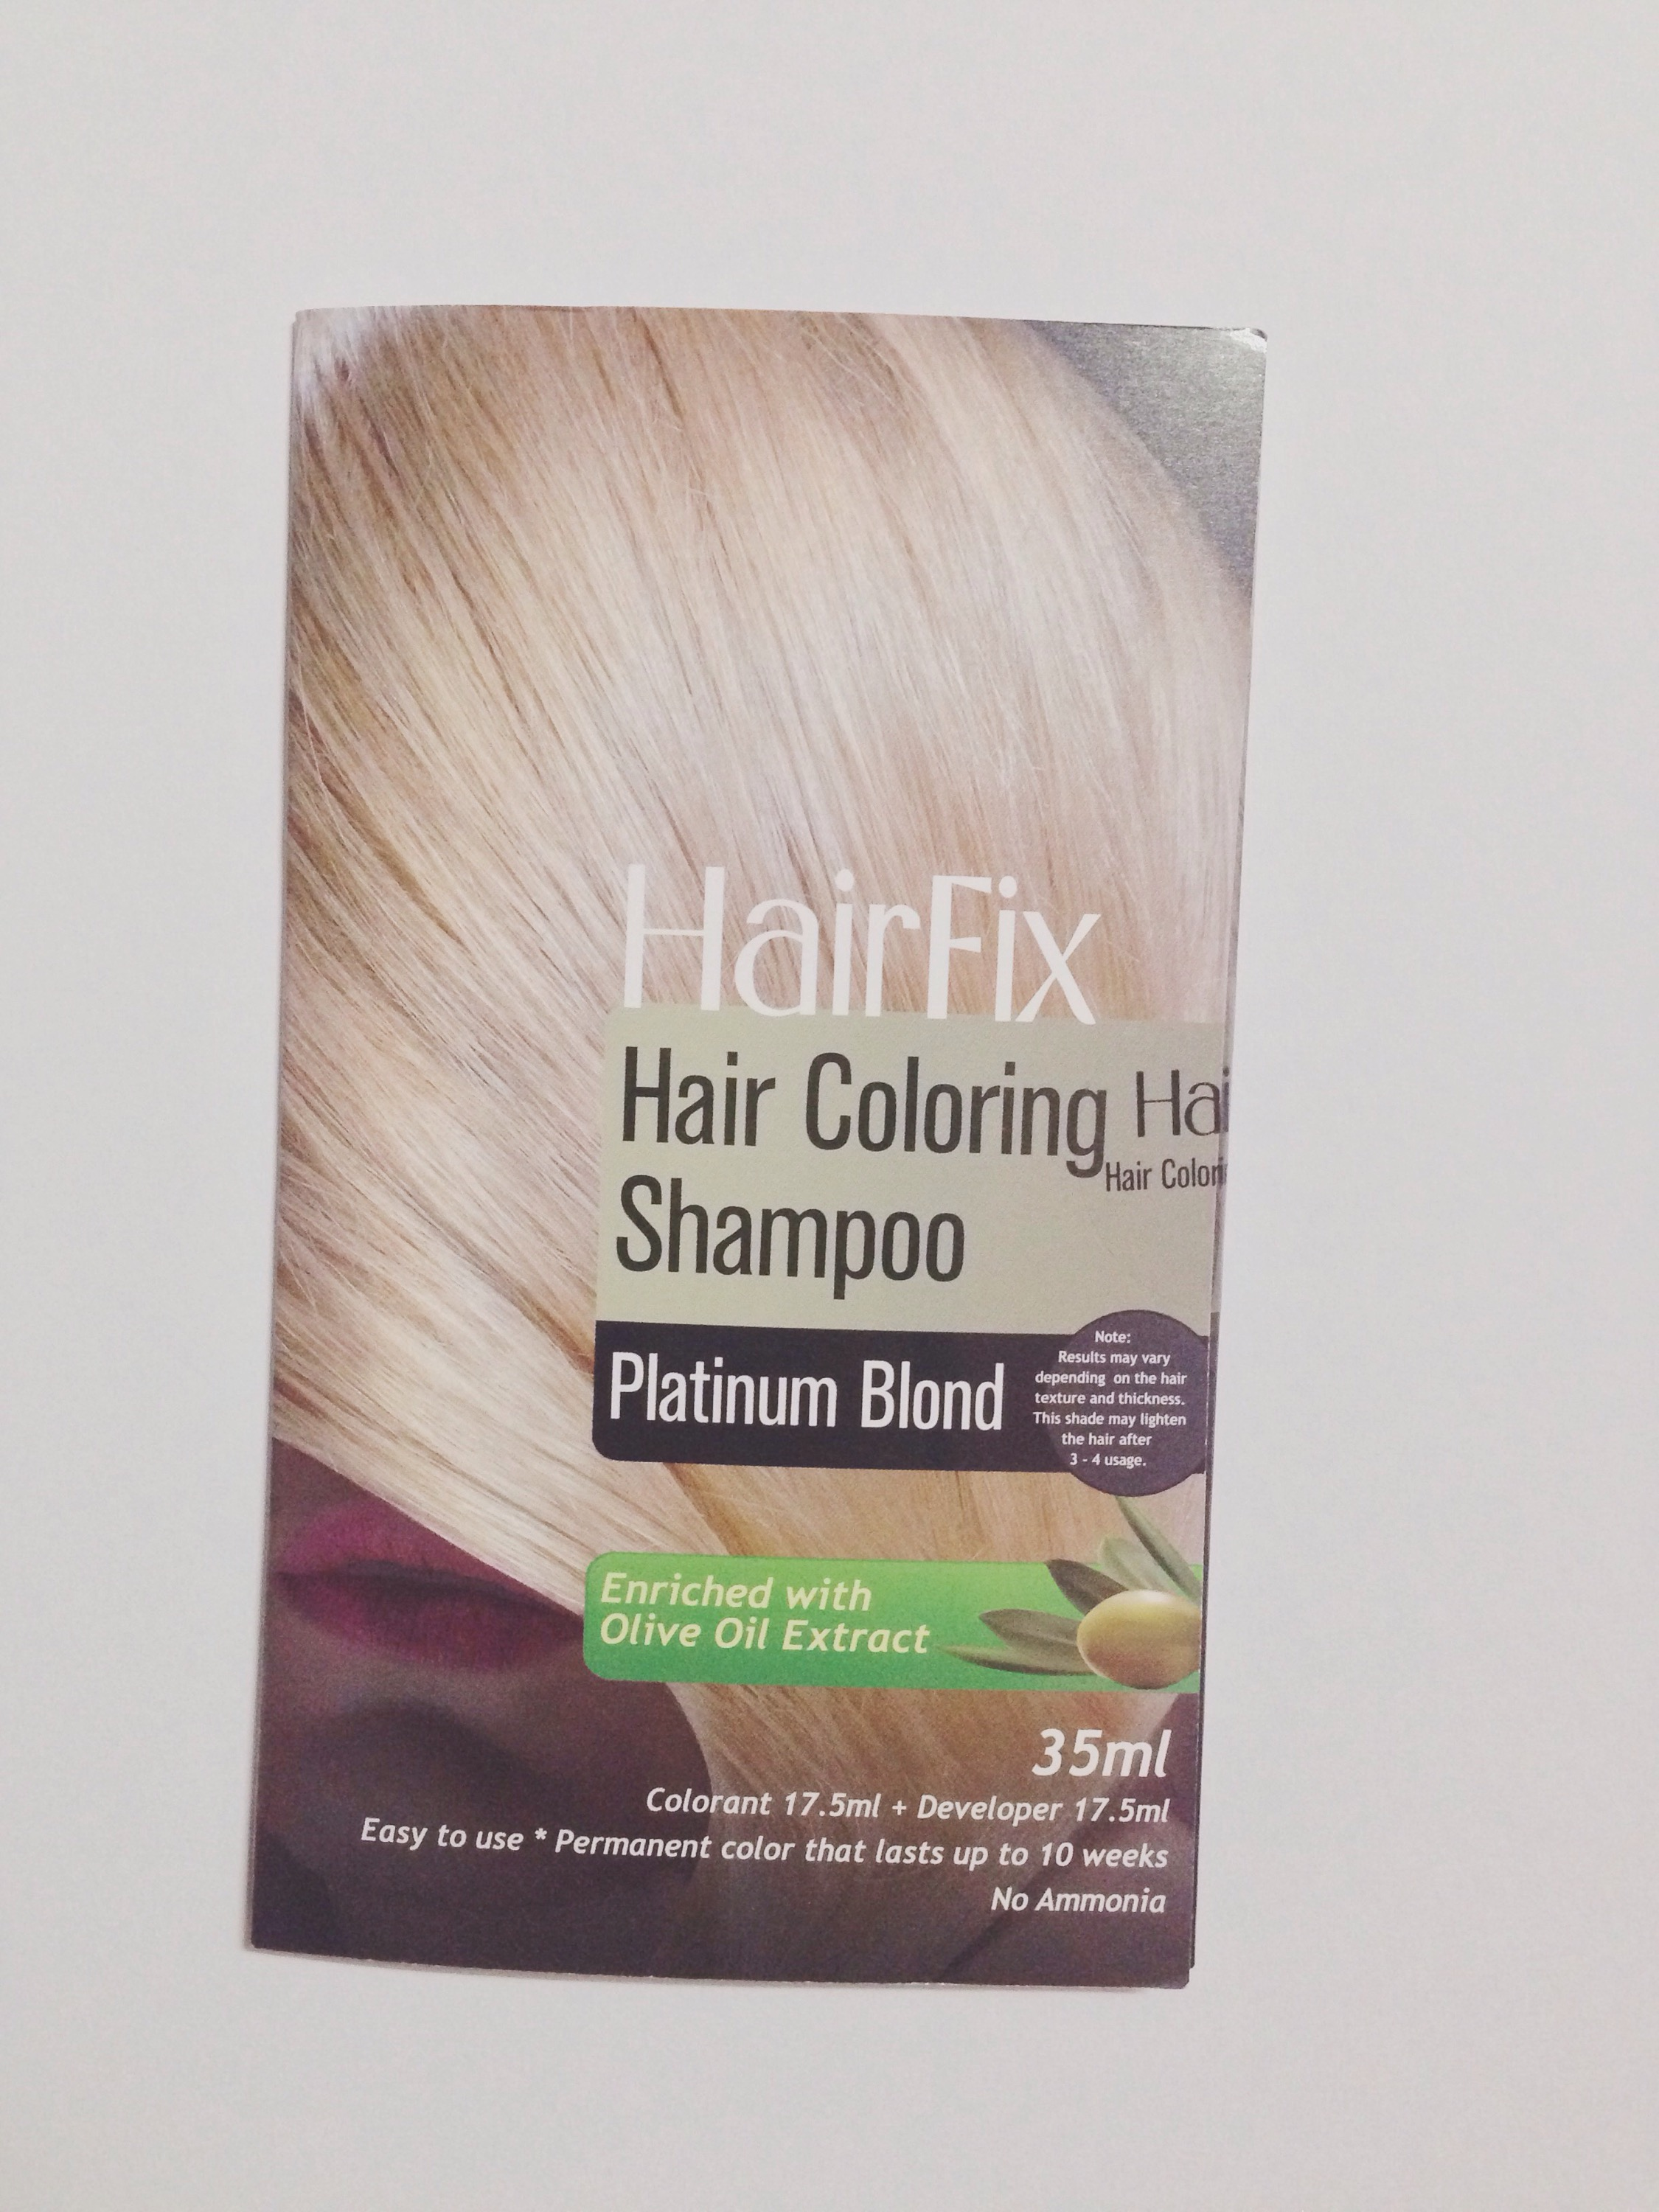 HairFix Hair Coloring Shampoo in Platinum Blond | I AM DYEING